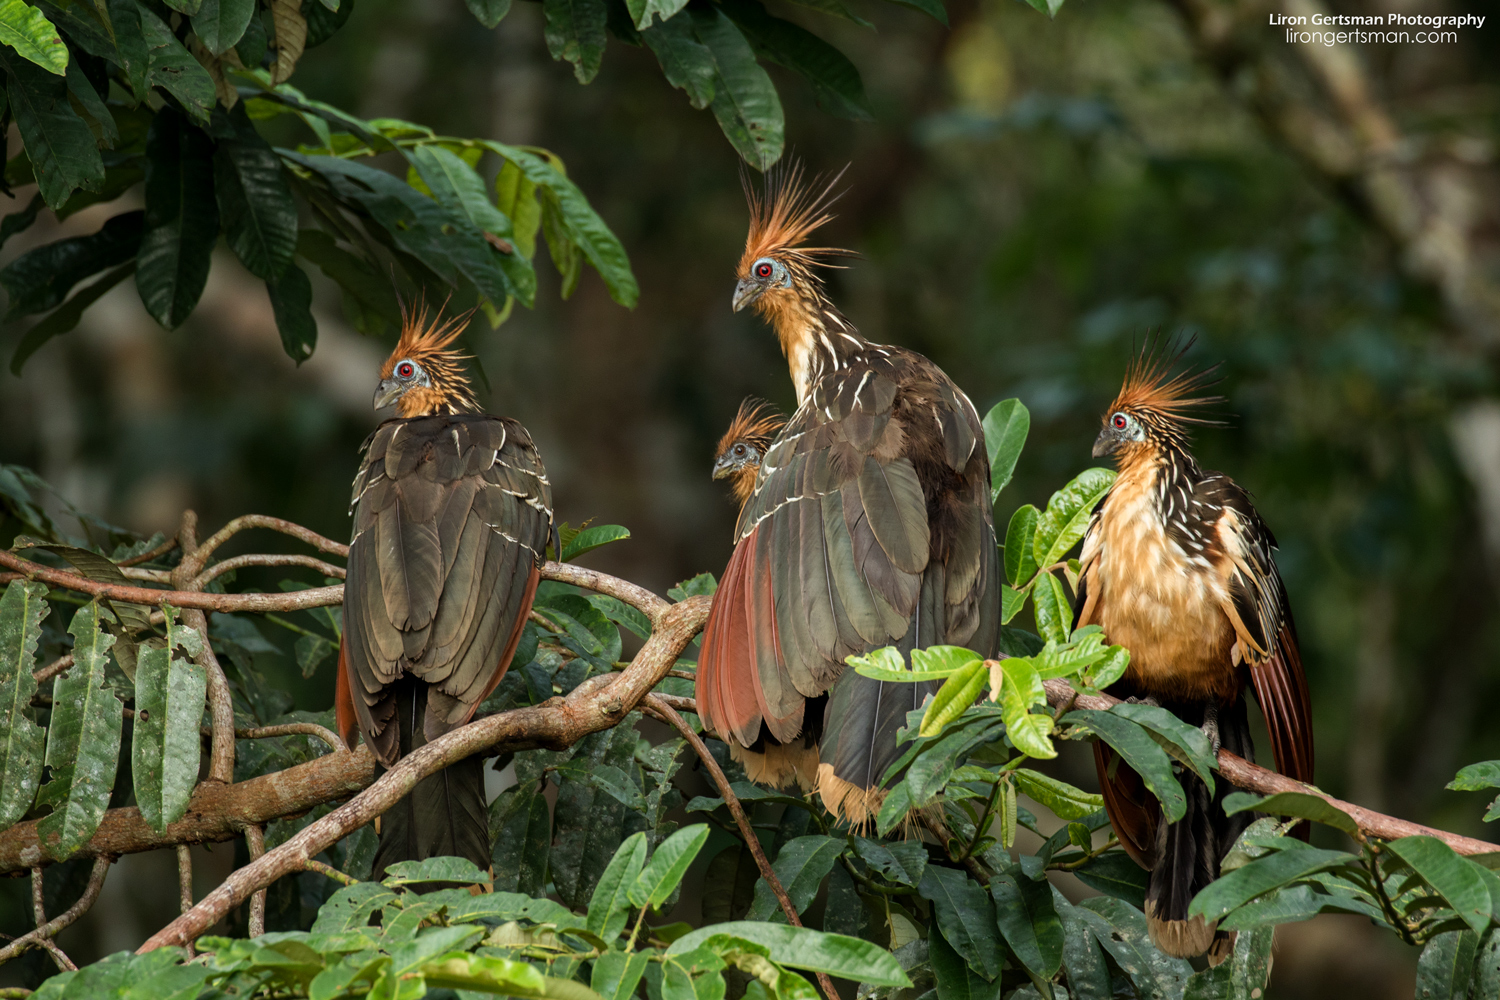 The Hoatzin has got to be on of the coolest looking birds that I've seen!